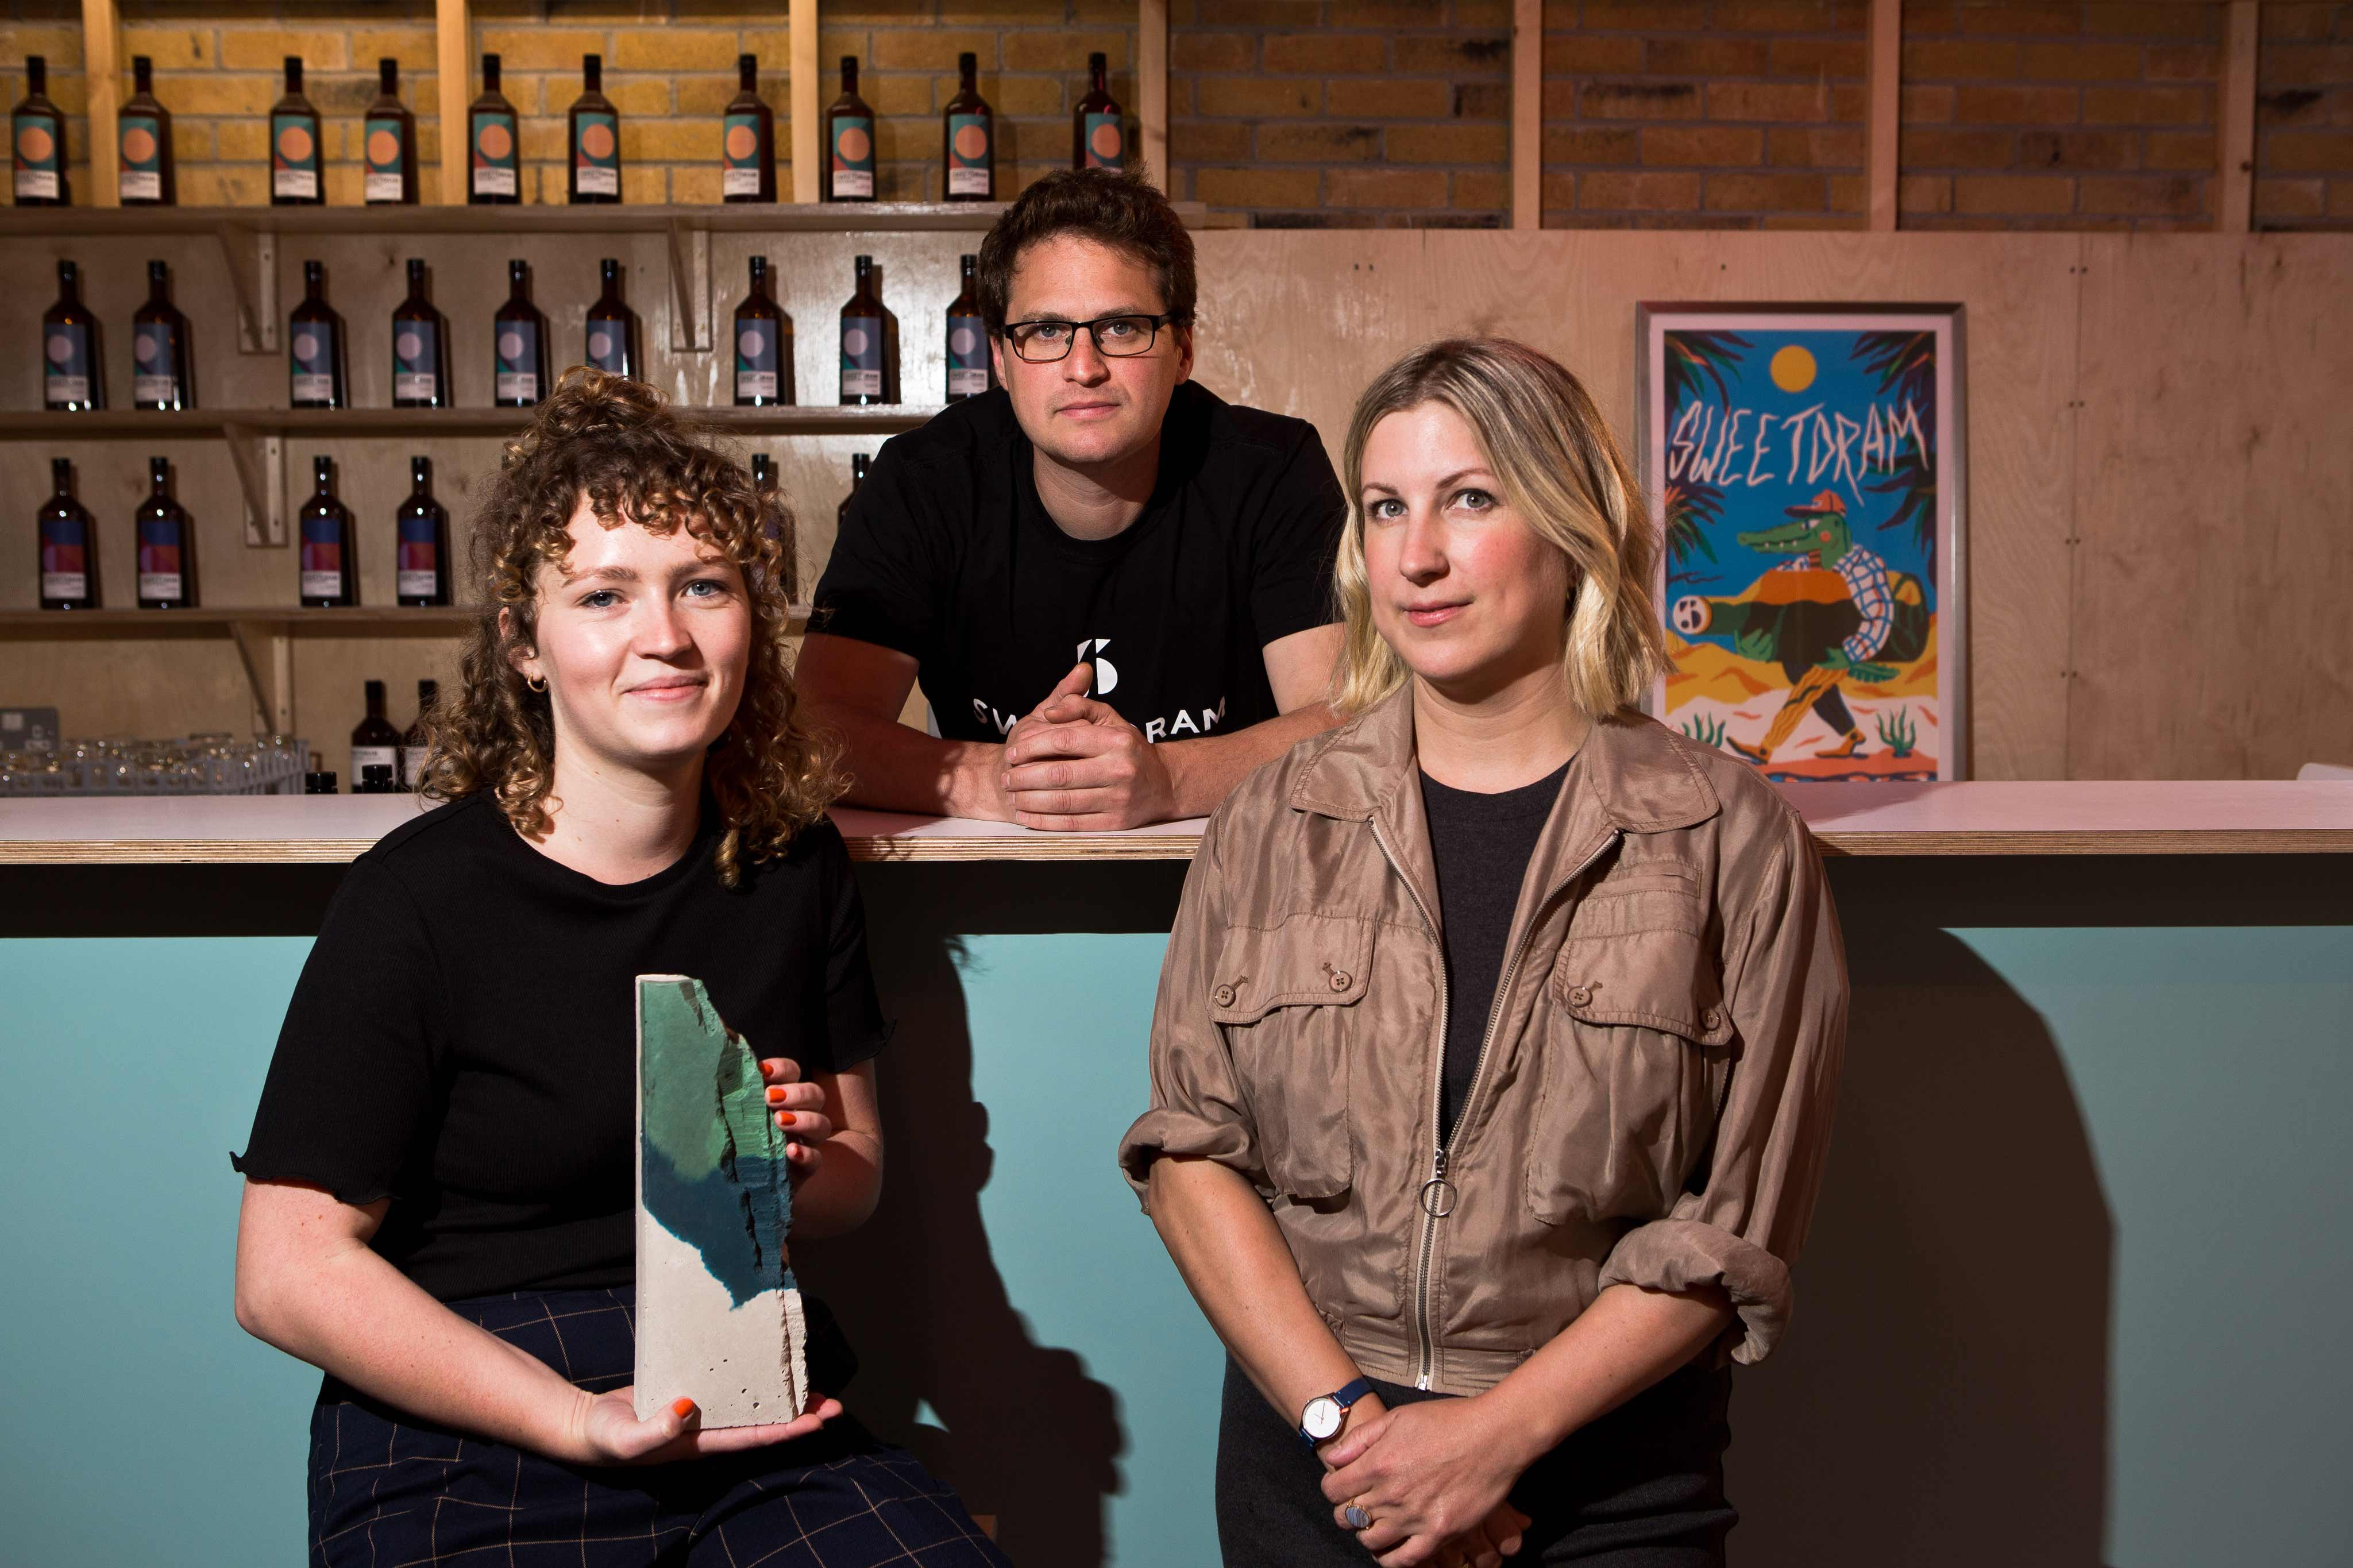 Emma McDowall, designer; Daniel Fisher, Co-founder of Sweetdram; Stacey Hunter, Director of Local Heroes. Photo: Eoin Carey.